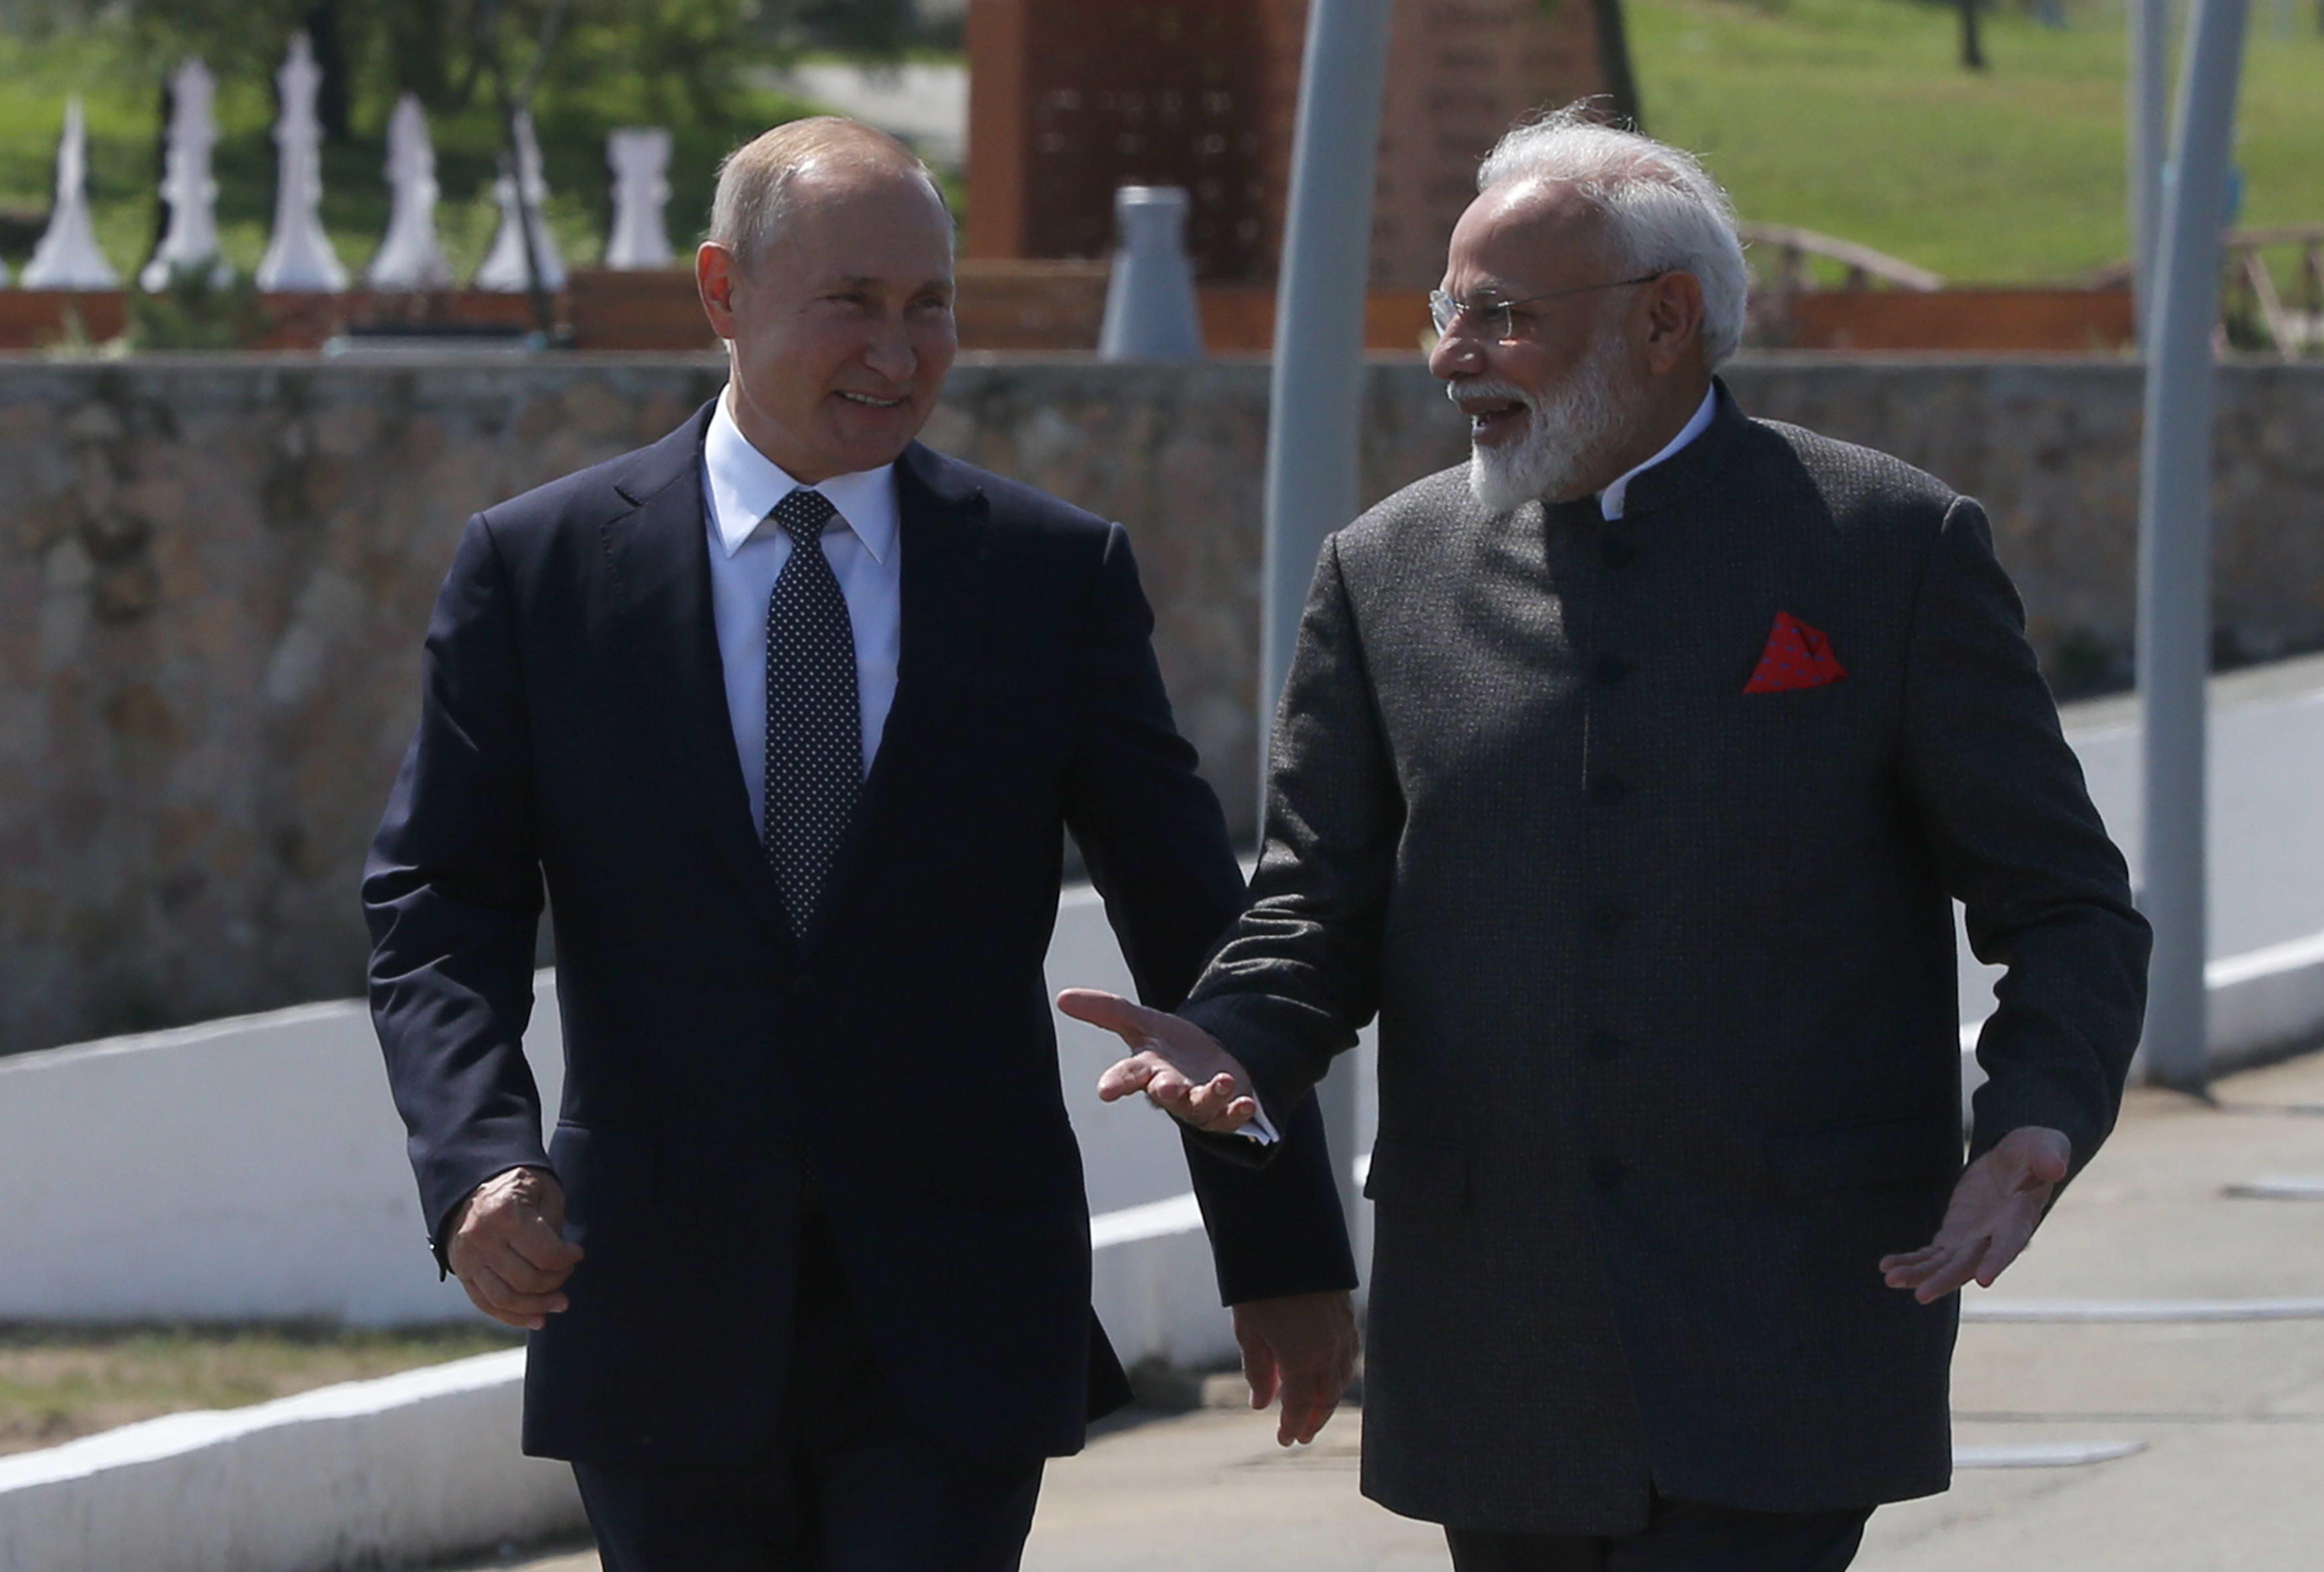 Russia can help India to be less dependent on oil, says Indian energy minister